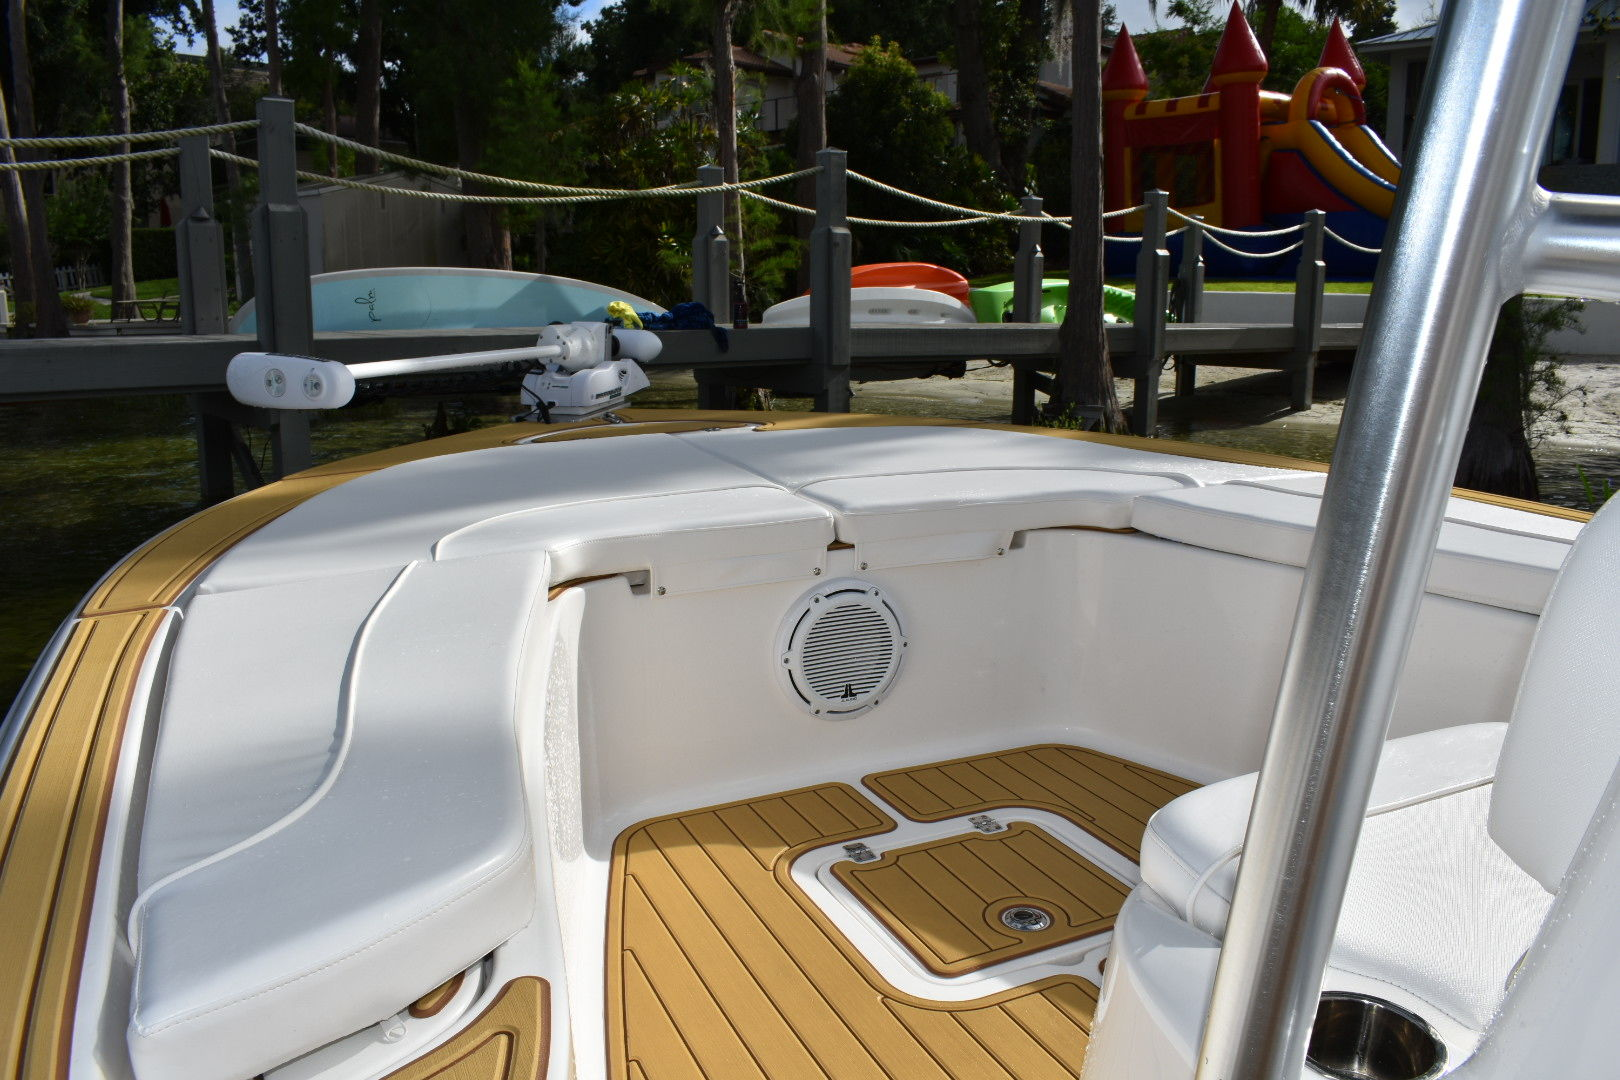 Tidewater Boats For Sale >> FOR SALE - 2017 Tidewater 2200 Carolina Bay Bay with 250 Yamaha - The Hull Truth - Boating and ...